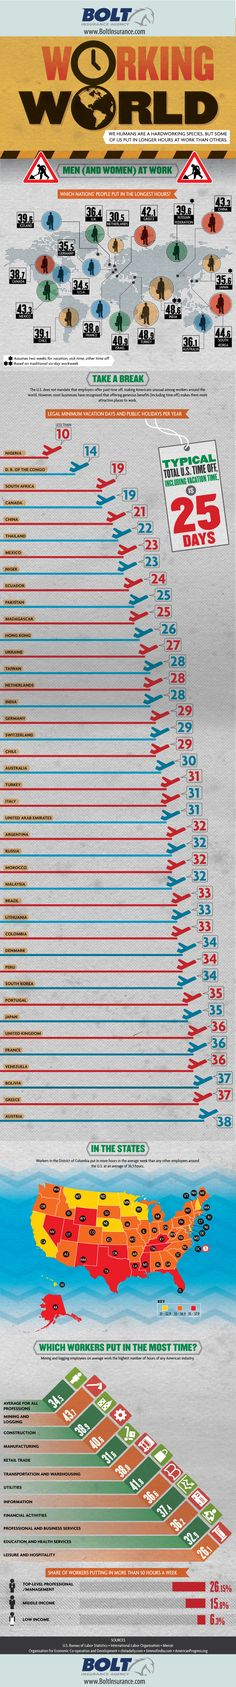 Employee Work Hours Around the World by boltinsurance #Infographic #Work_Hours #Vacations